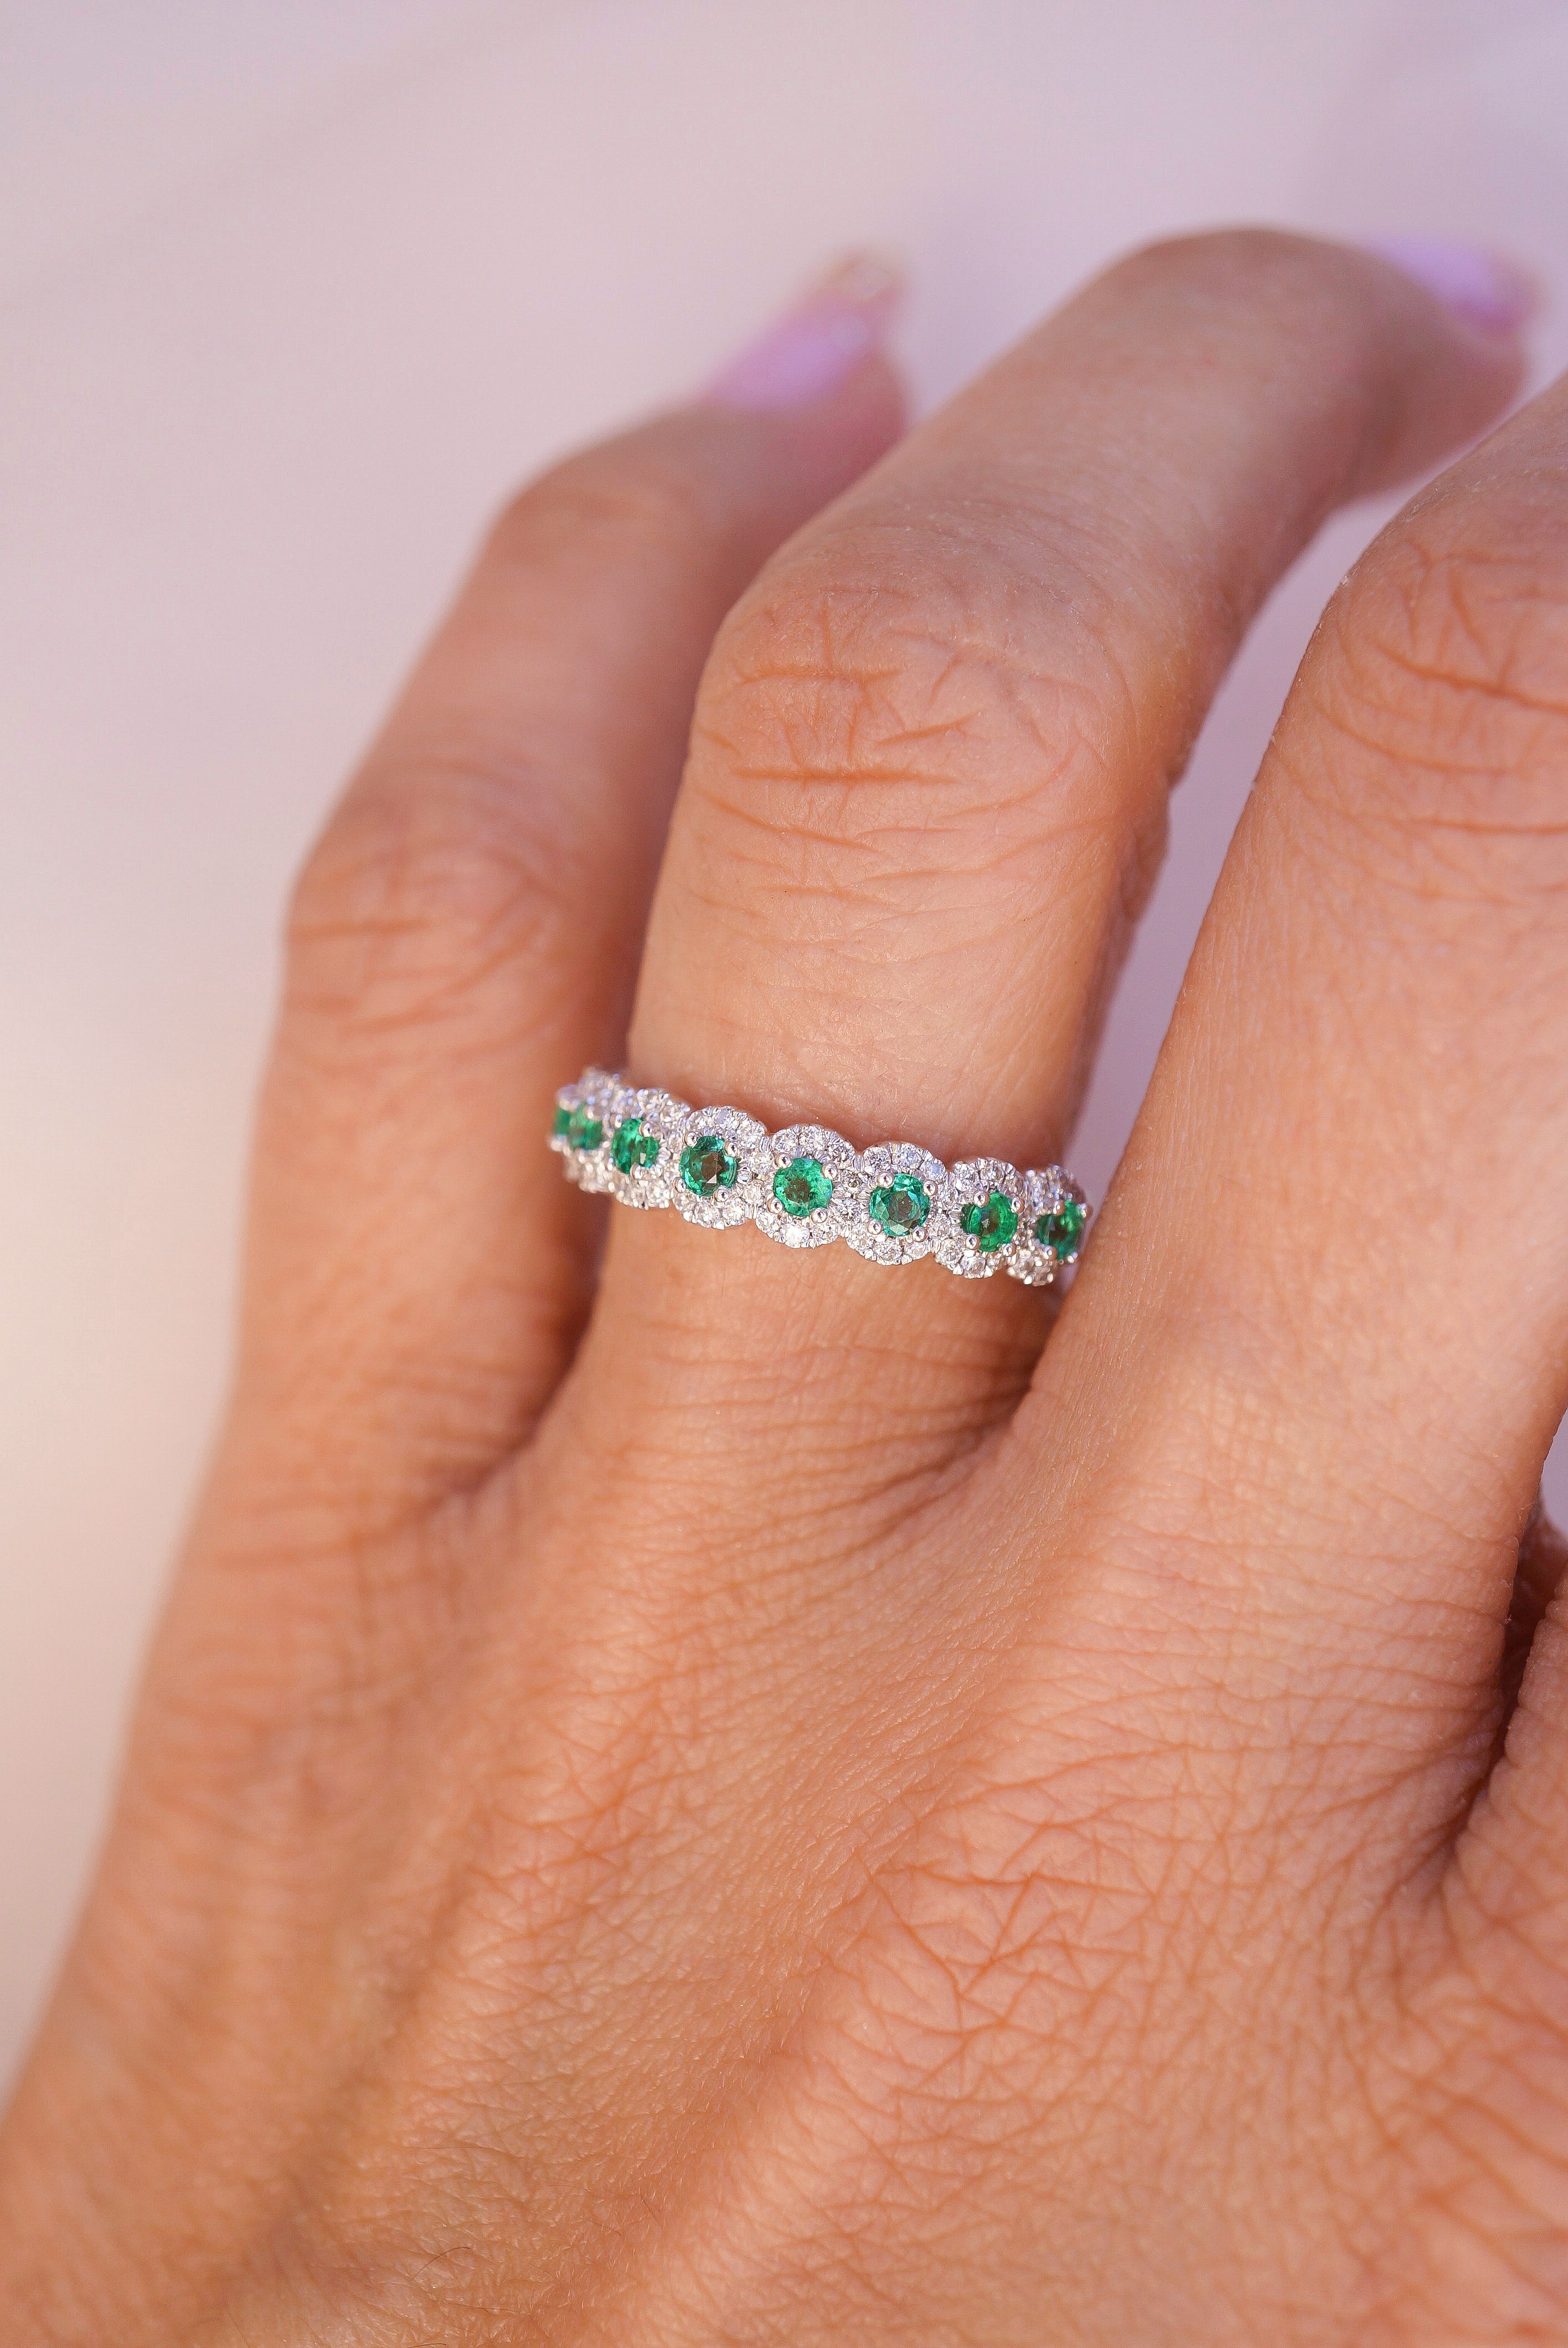 This is an image of Green Emerald Band Gemstone wedding bands, Emerald wedding rings